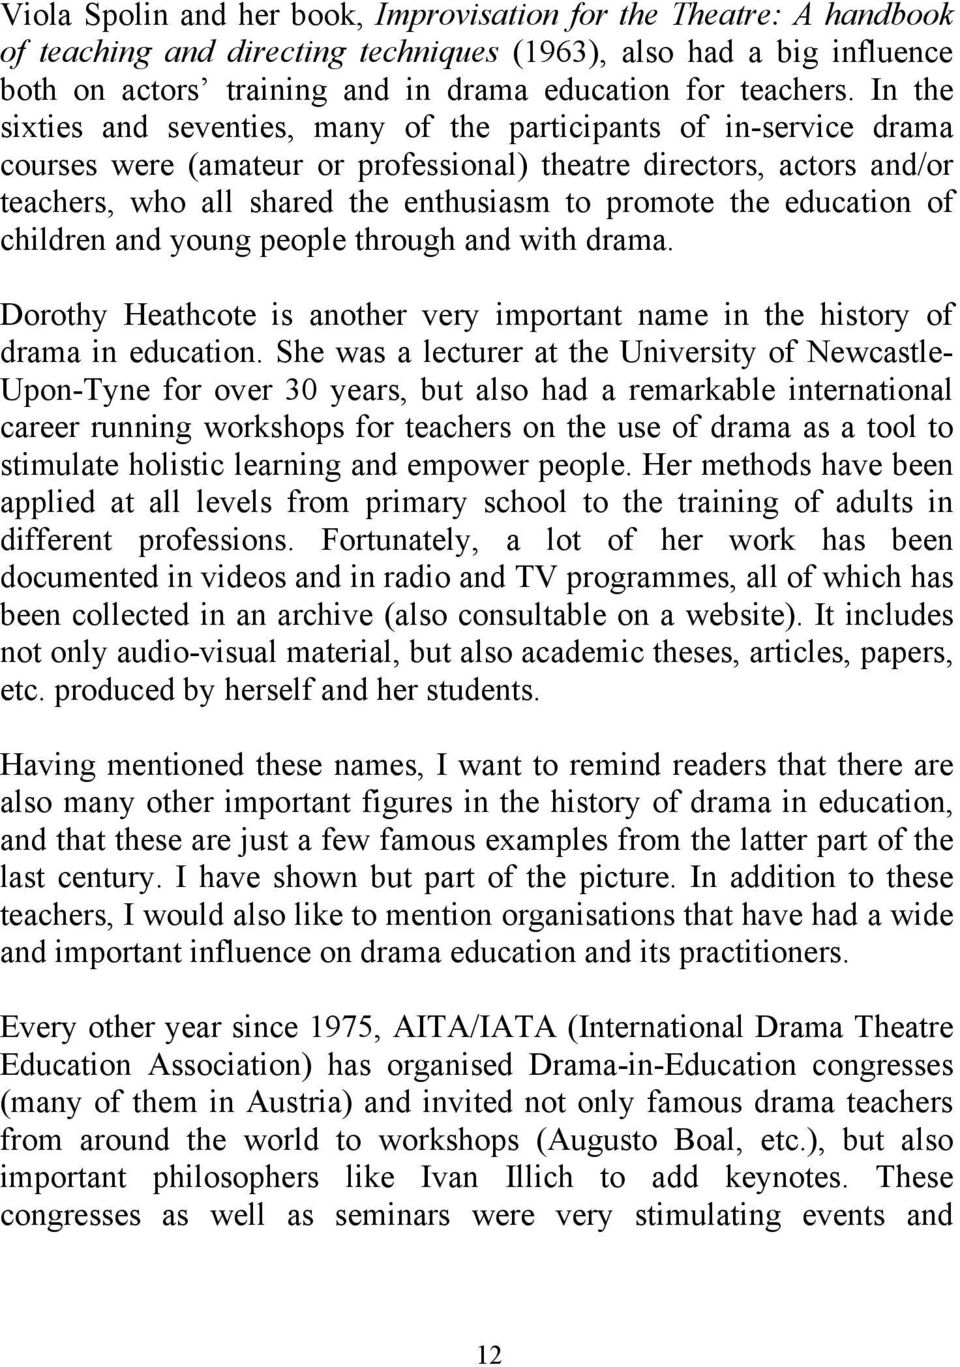 the education of children and young people through and with drama. Dorothy Heathcote is another very important name in the history of drama in education.